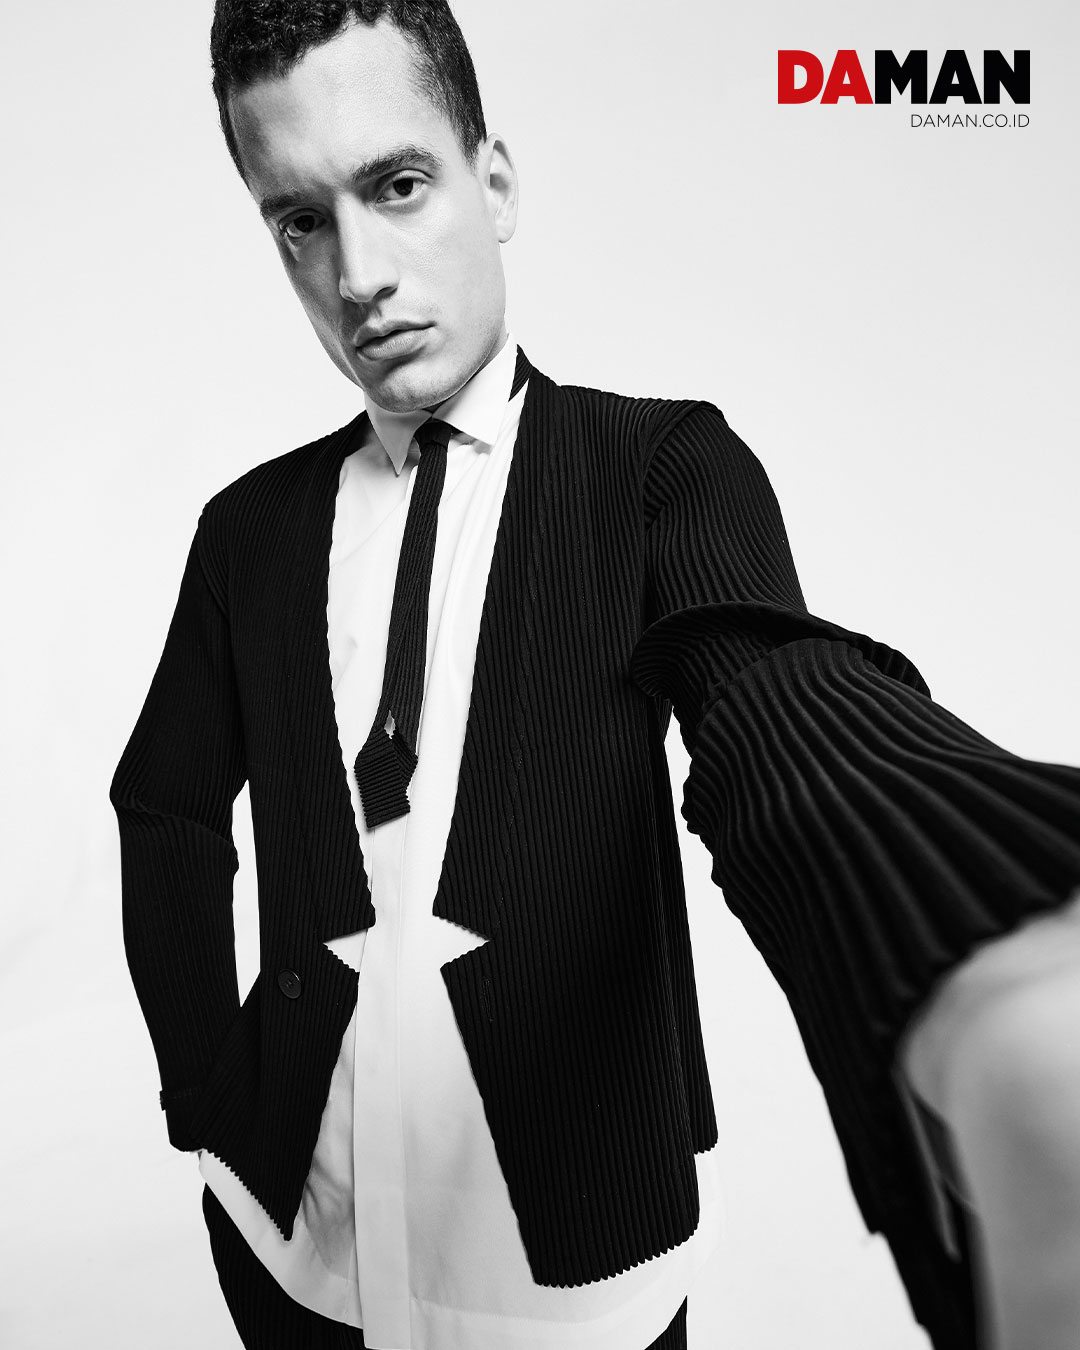 On Kevin: Outfit by Homme Plissé Issey Miyake